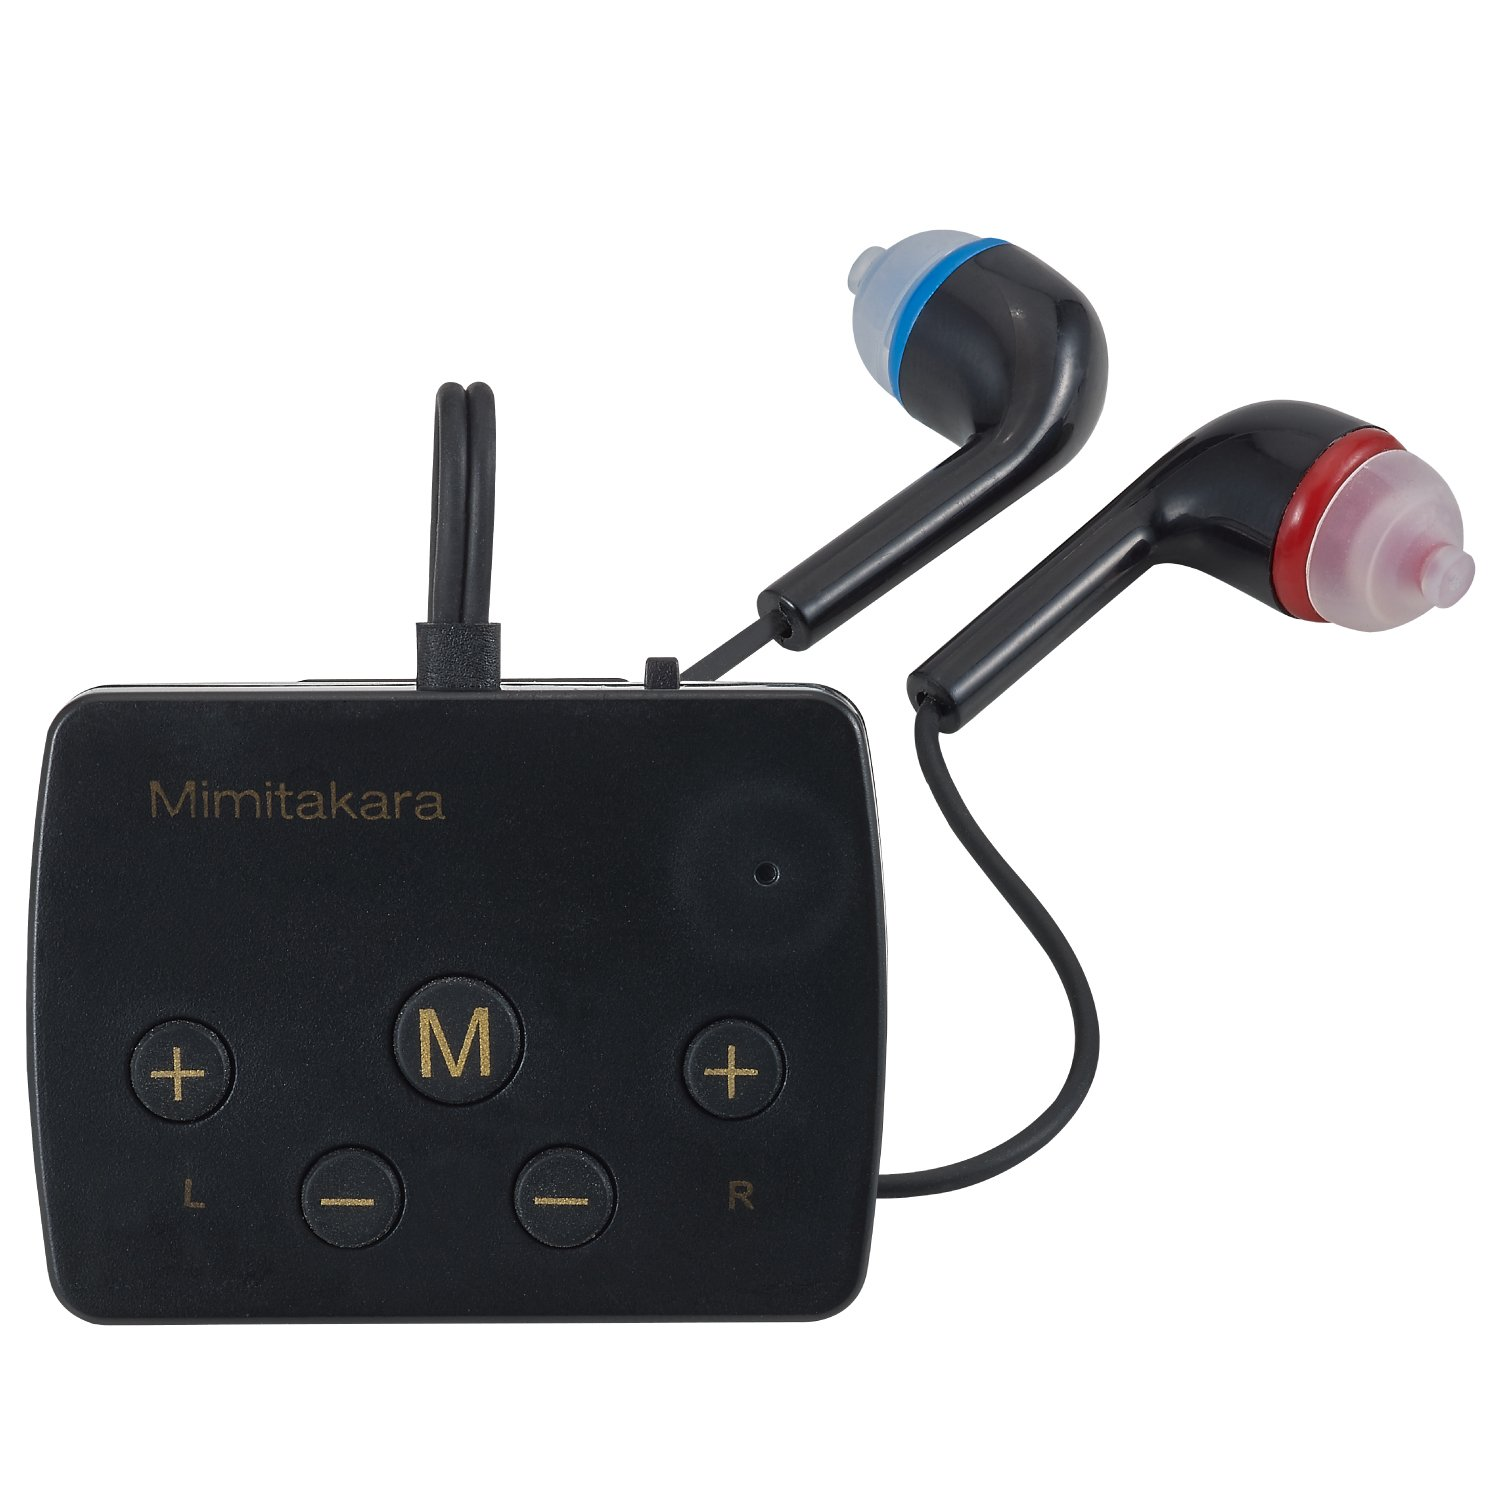 Mimitakara (Dual) [Black] FDA Registered Rechargeable Sound Amplifier, with Bluetooth technology